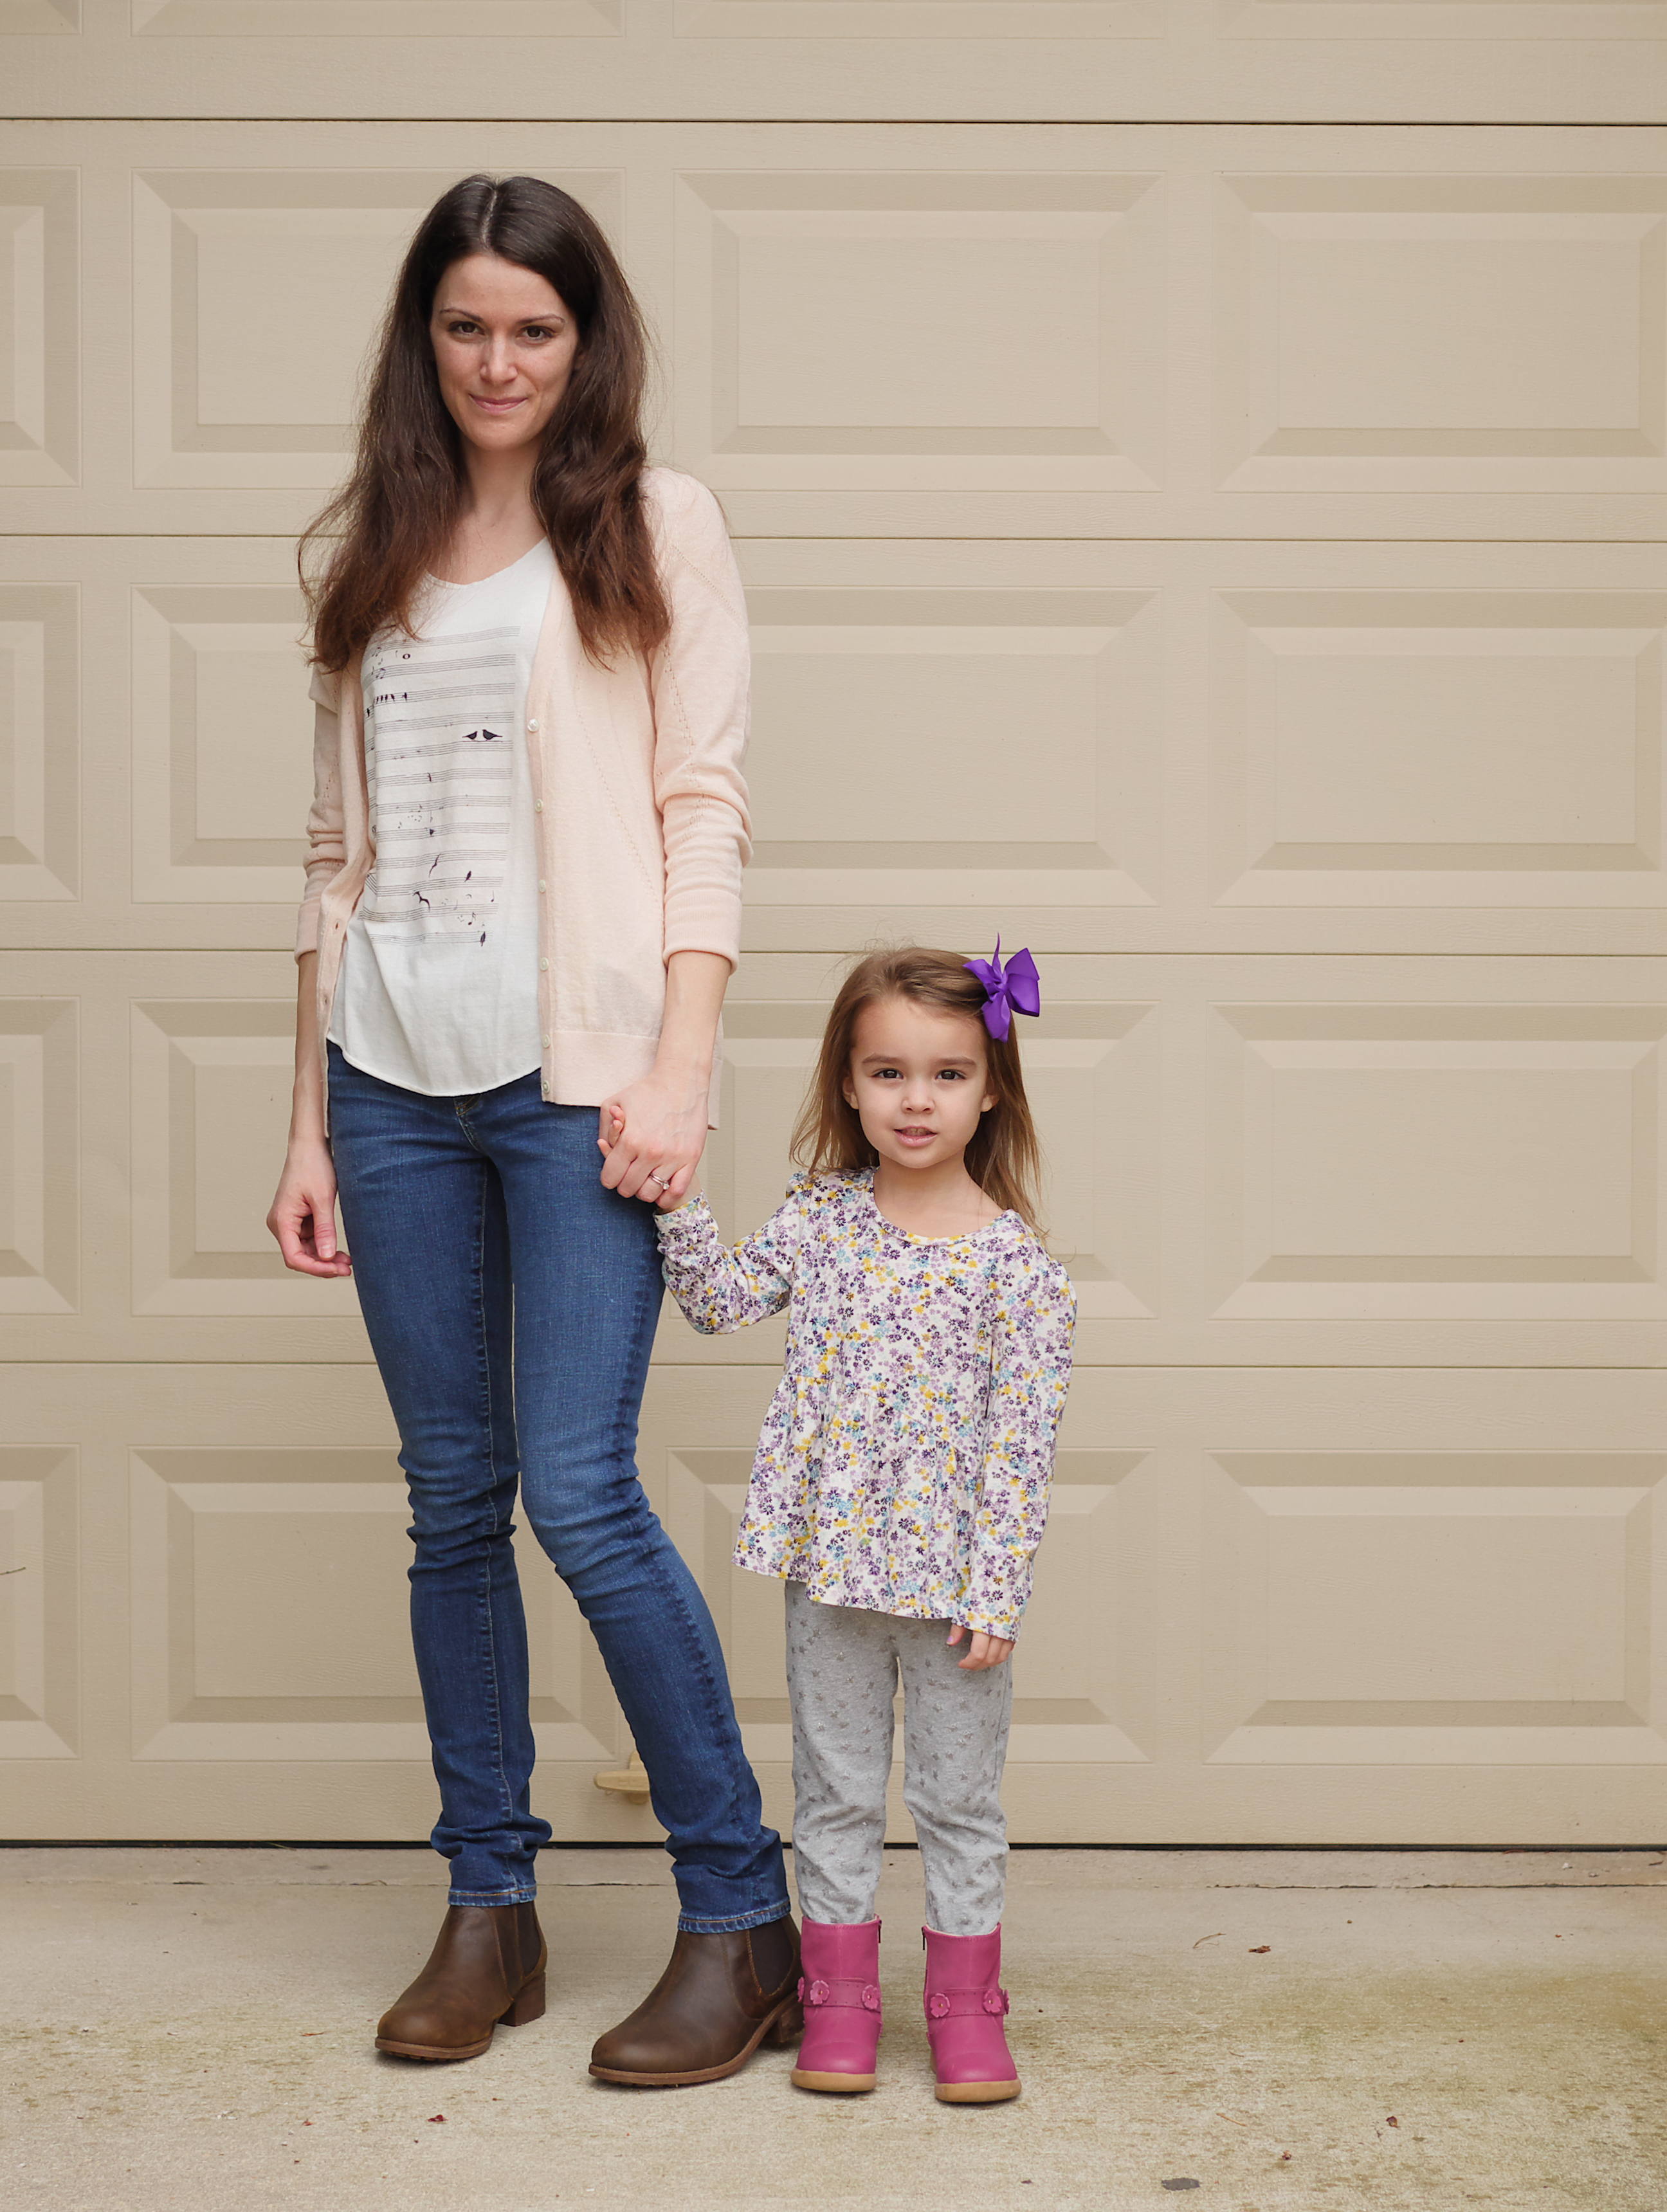 Spring Fashion Feature With KicksUSA UGG Bonham Boots. by Theresa's Reviews